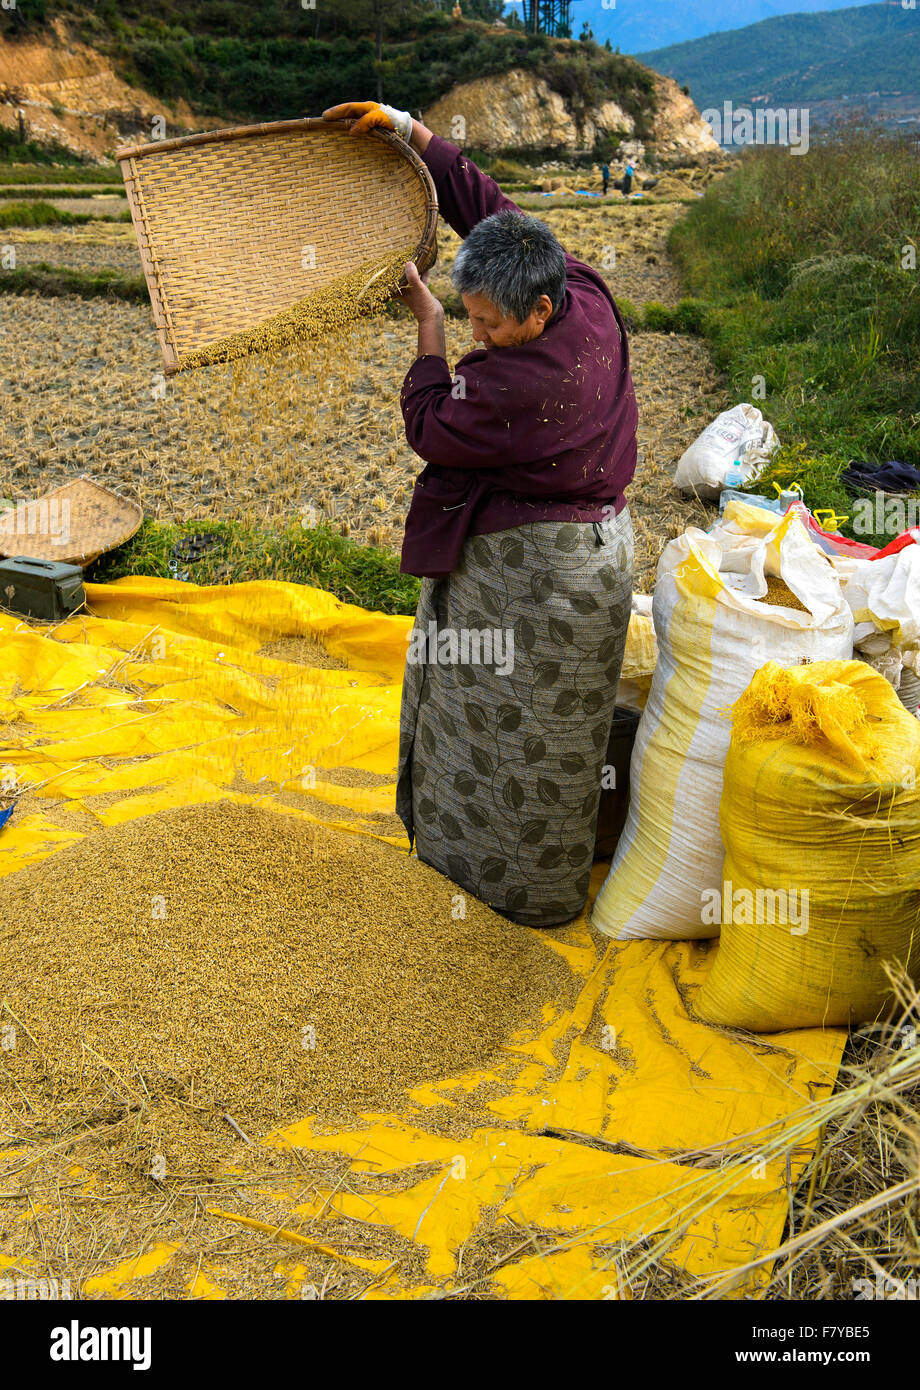 Bhutanese woman separating chaff from rice, Paro, Bhutan Stock Photo